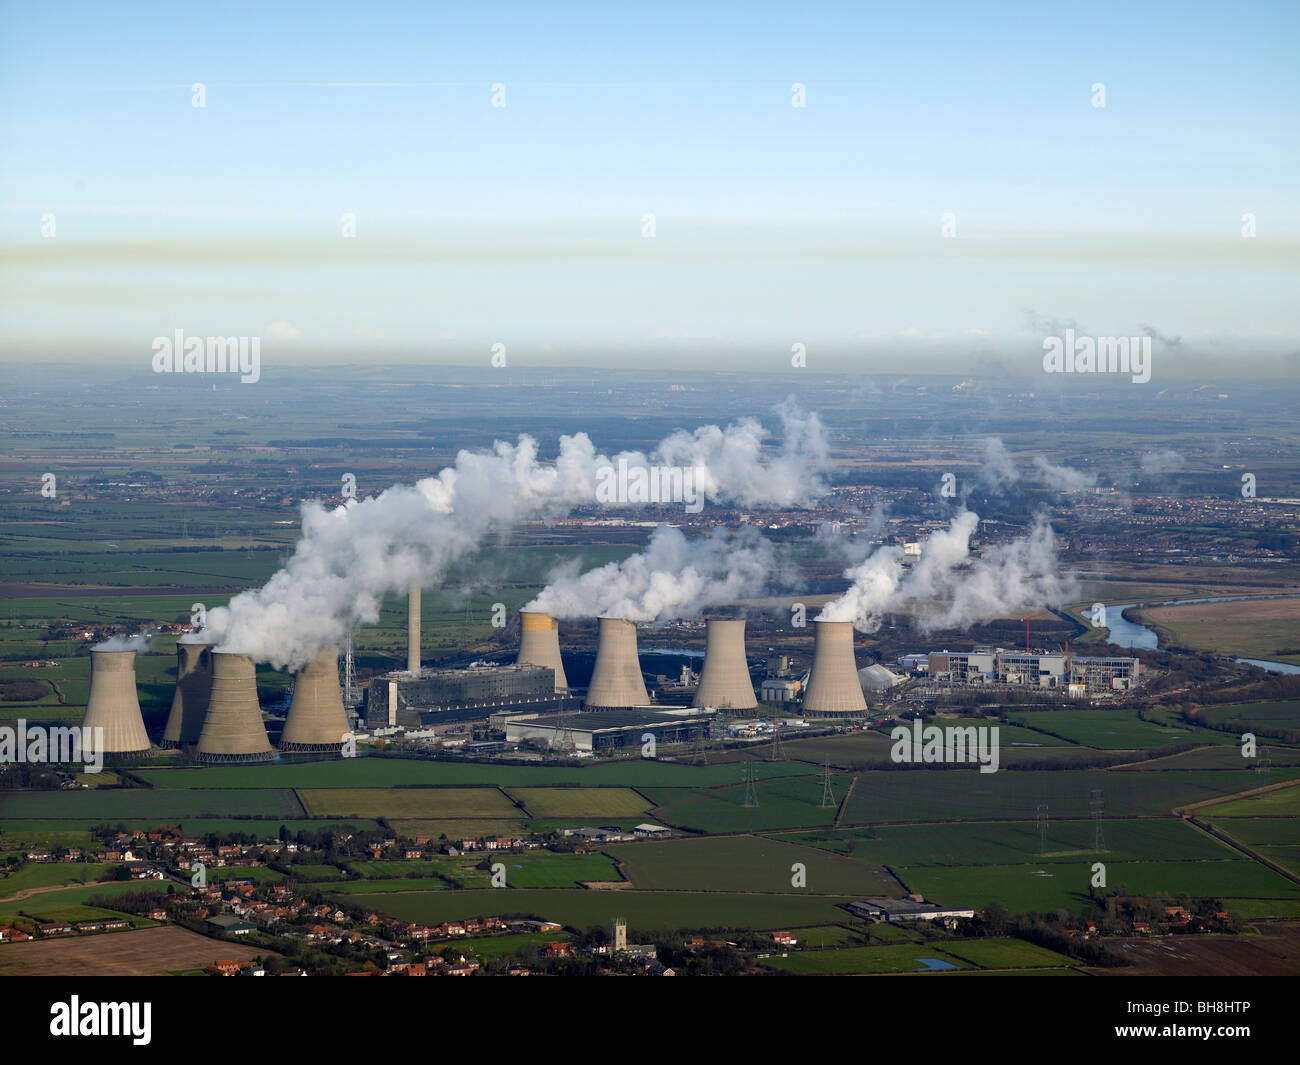 Power Station Pollution from Drax Power Station, with Cottam Power Station foreground, East Midlands, UK - Stock Image